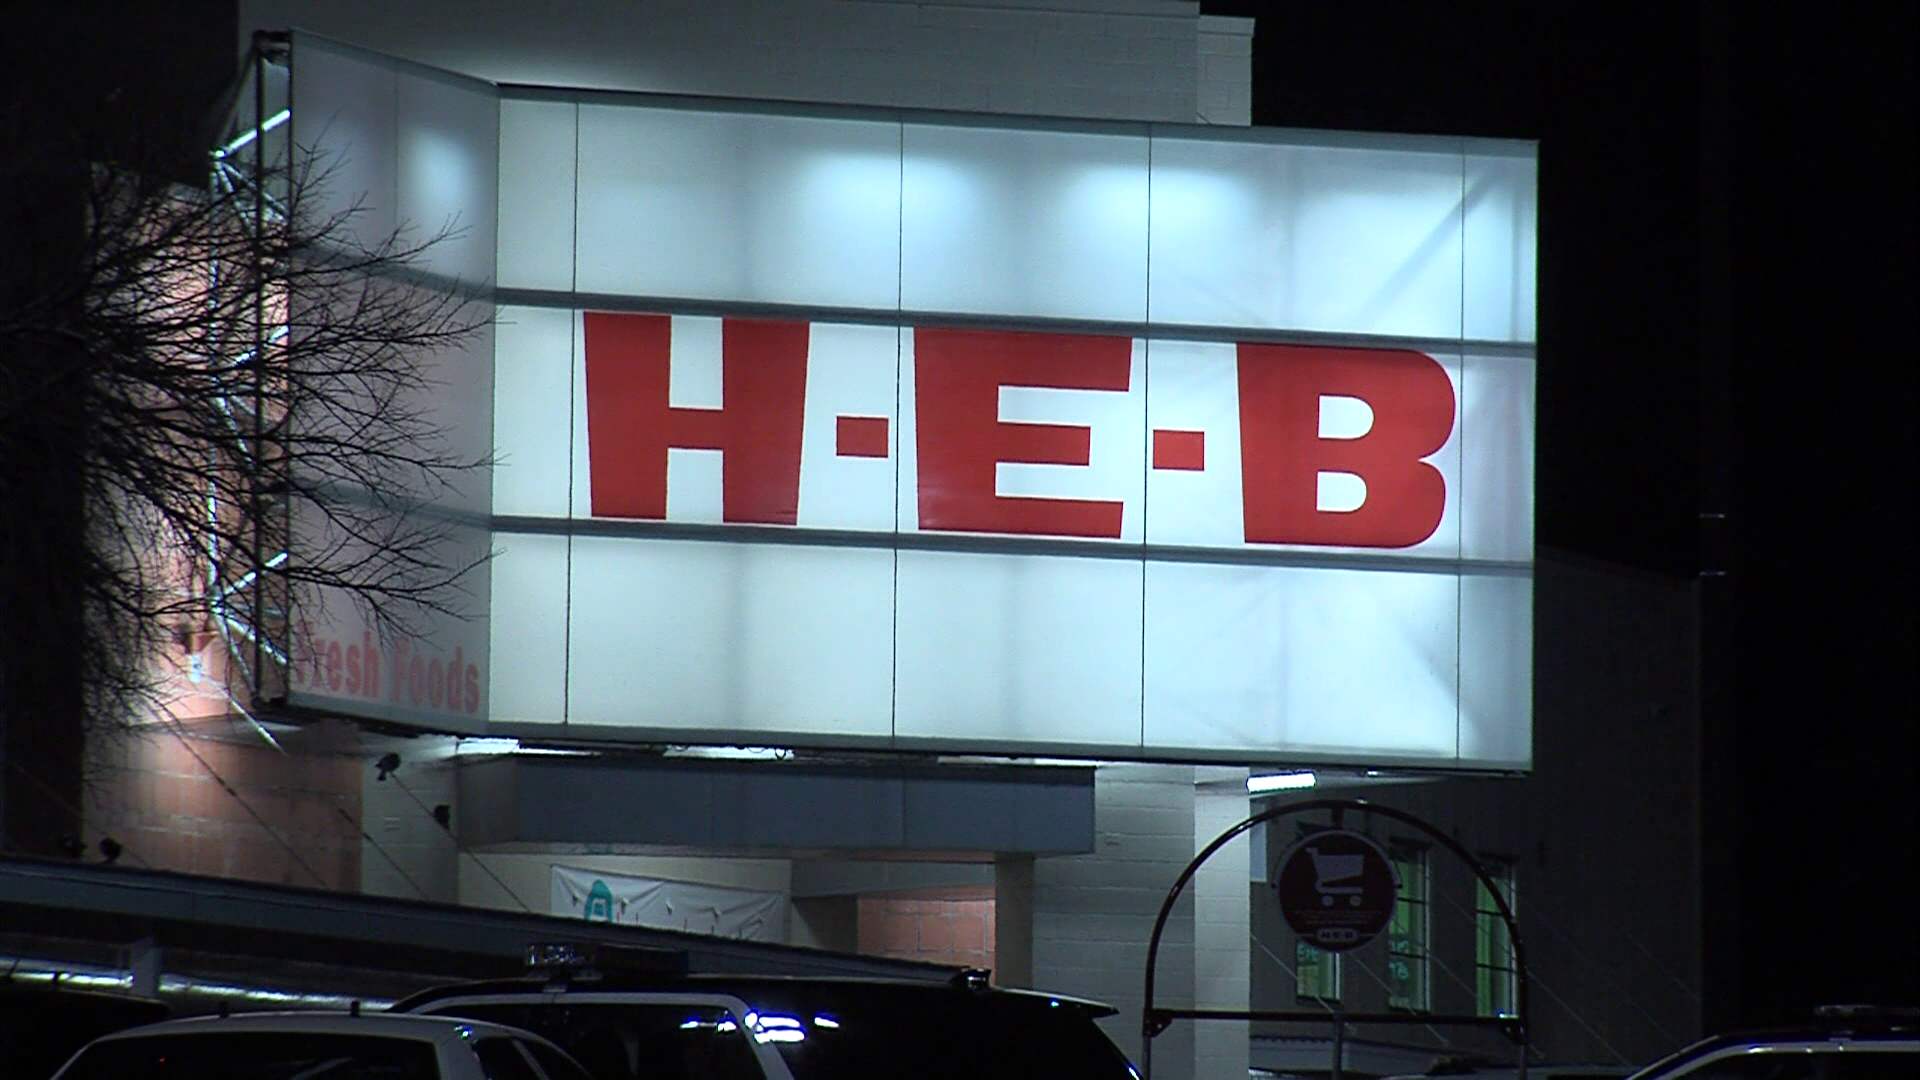 The HEB employees were arguing inside the store when one took out a box cutter and cut the other on the arm. (SBG Photo)